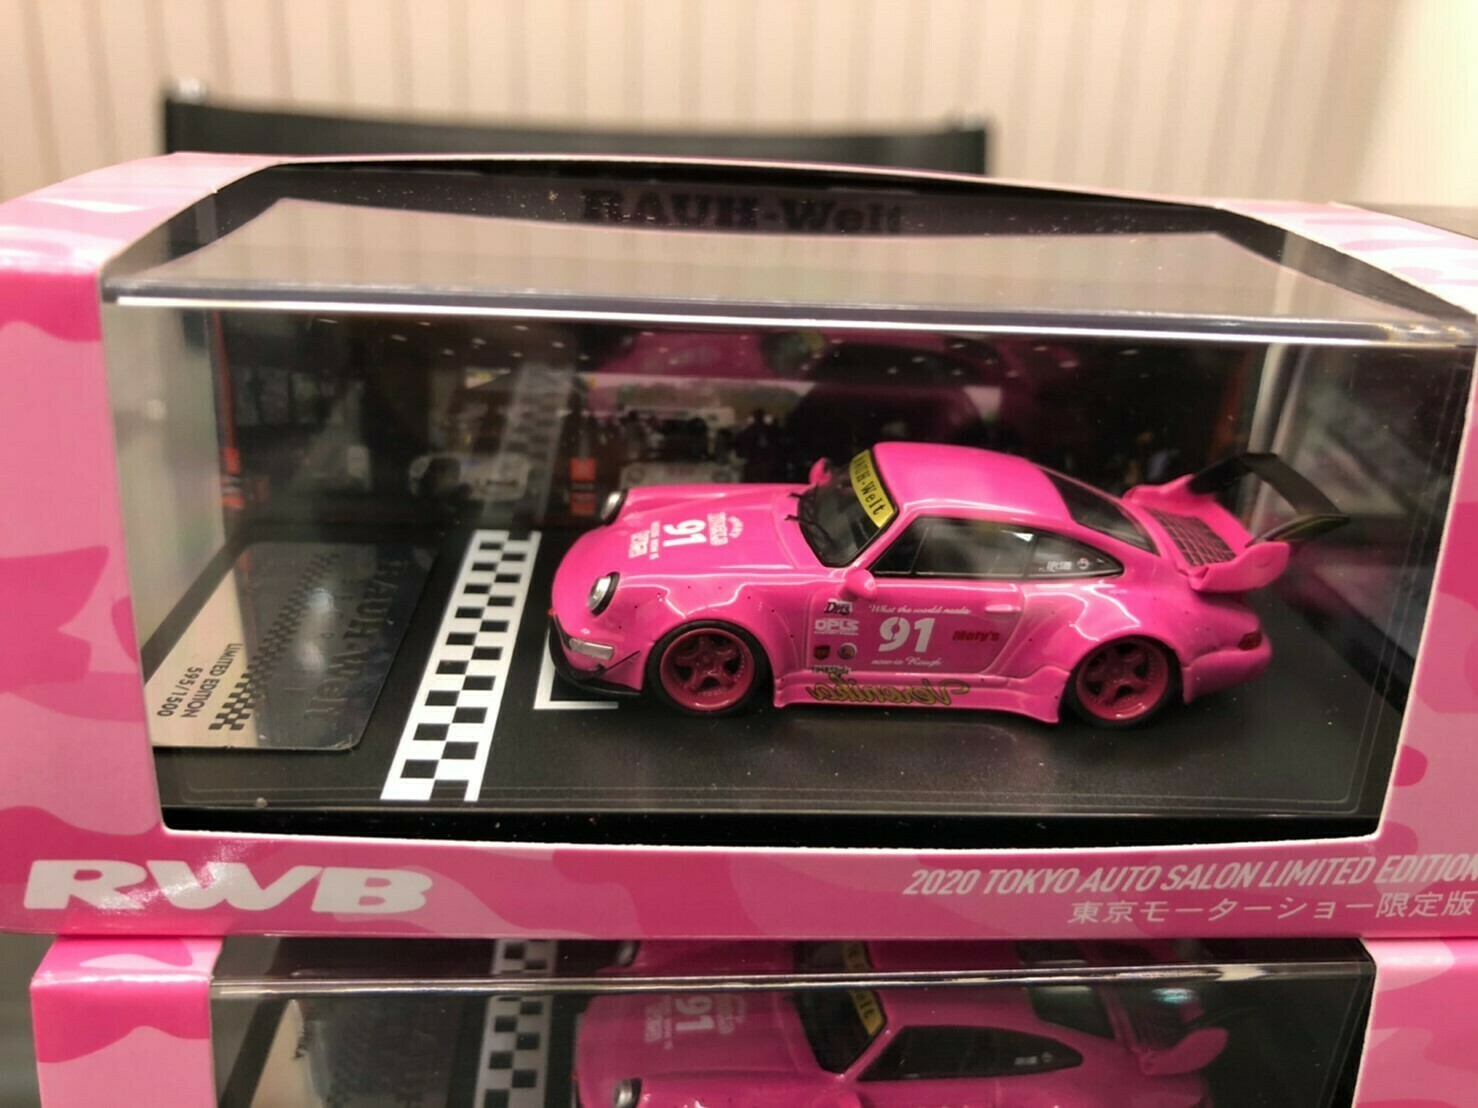 Rwb 1 64 Model Car Idlers Pink 2020 Tokyo Auto Salon Limited Edition